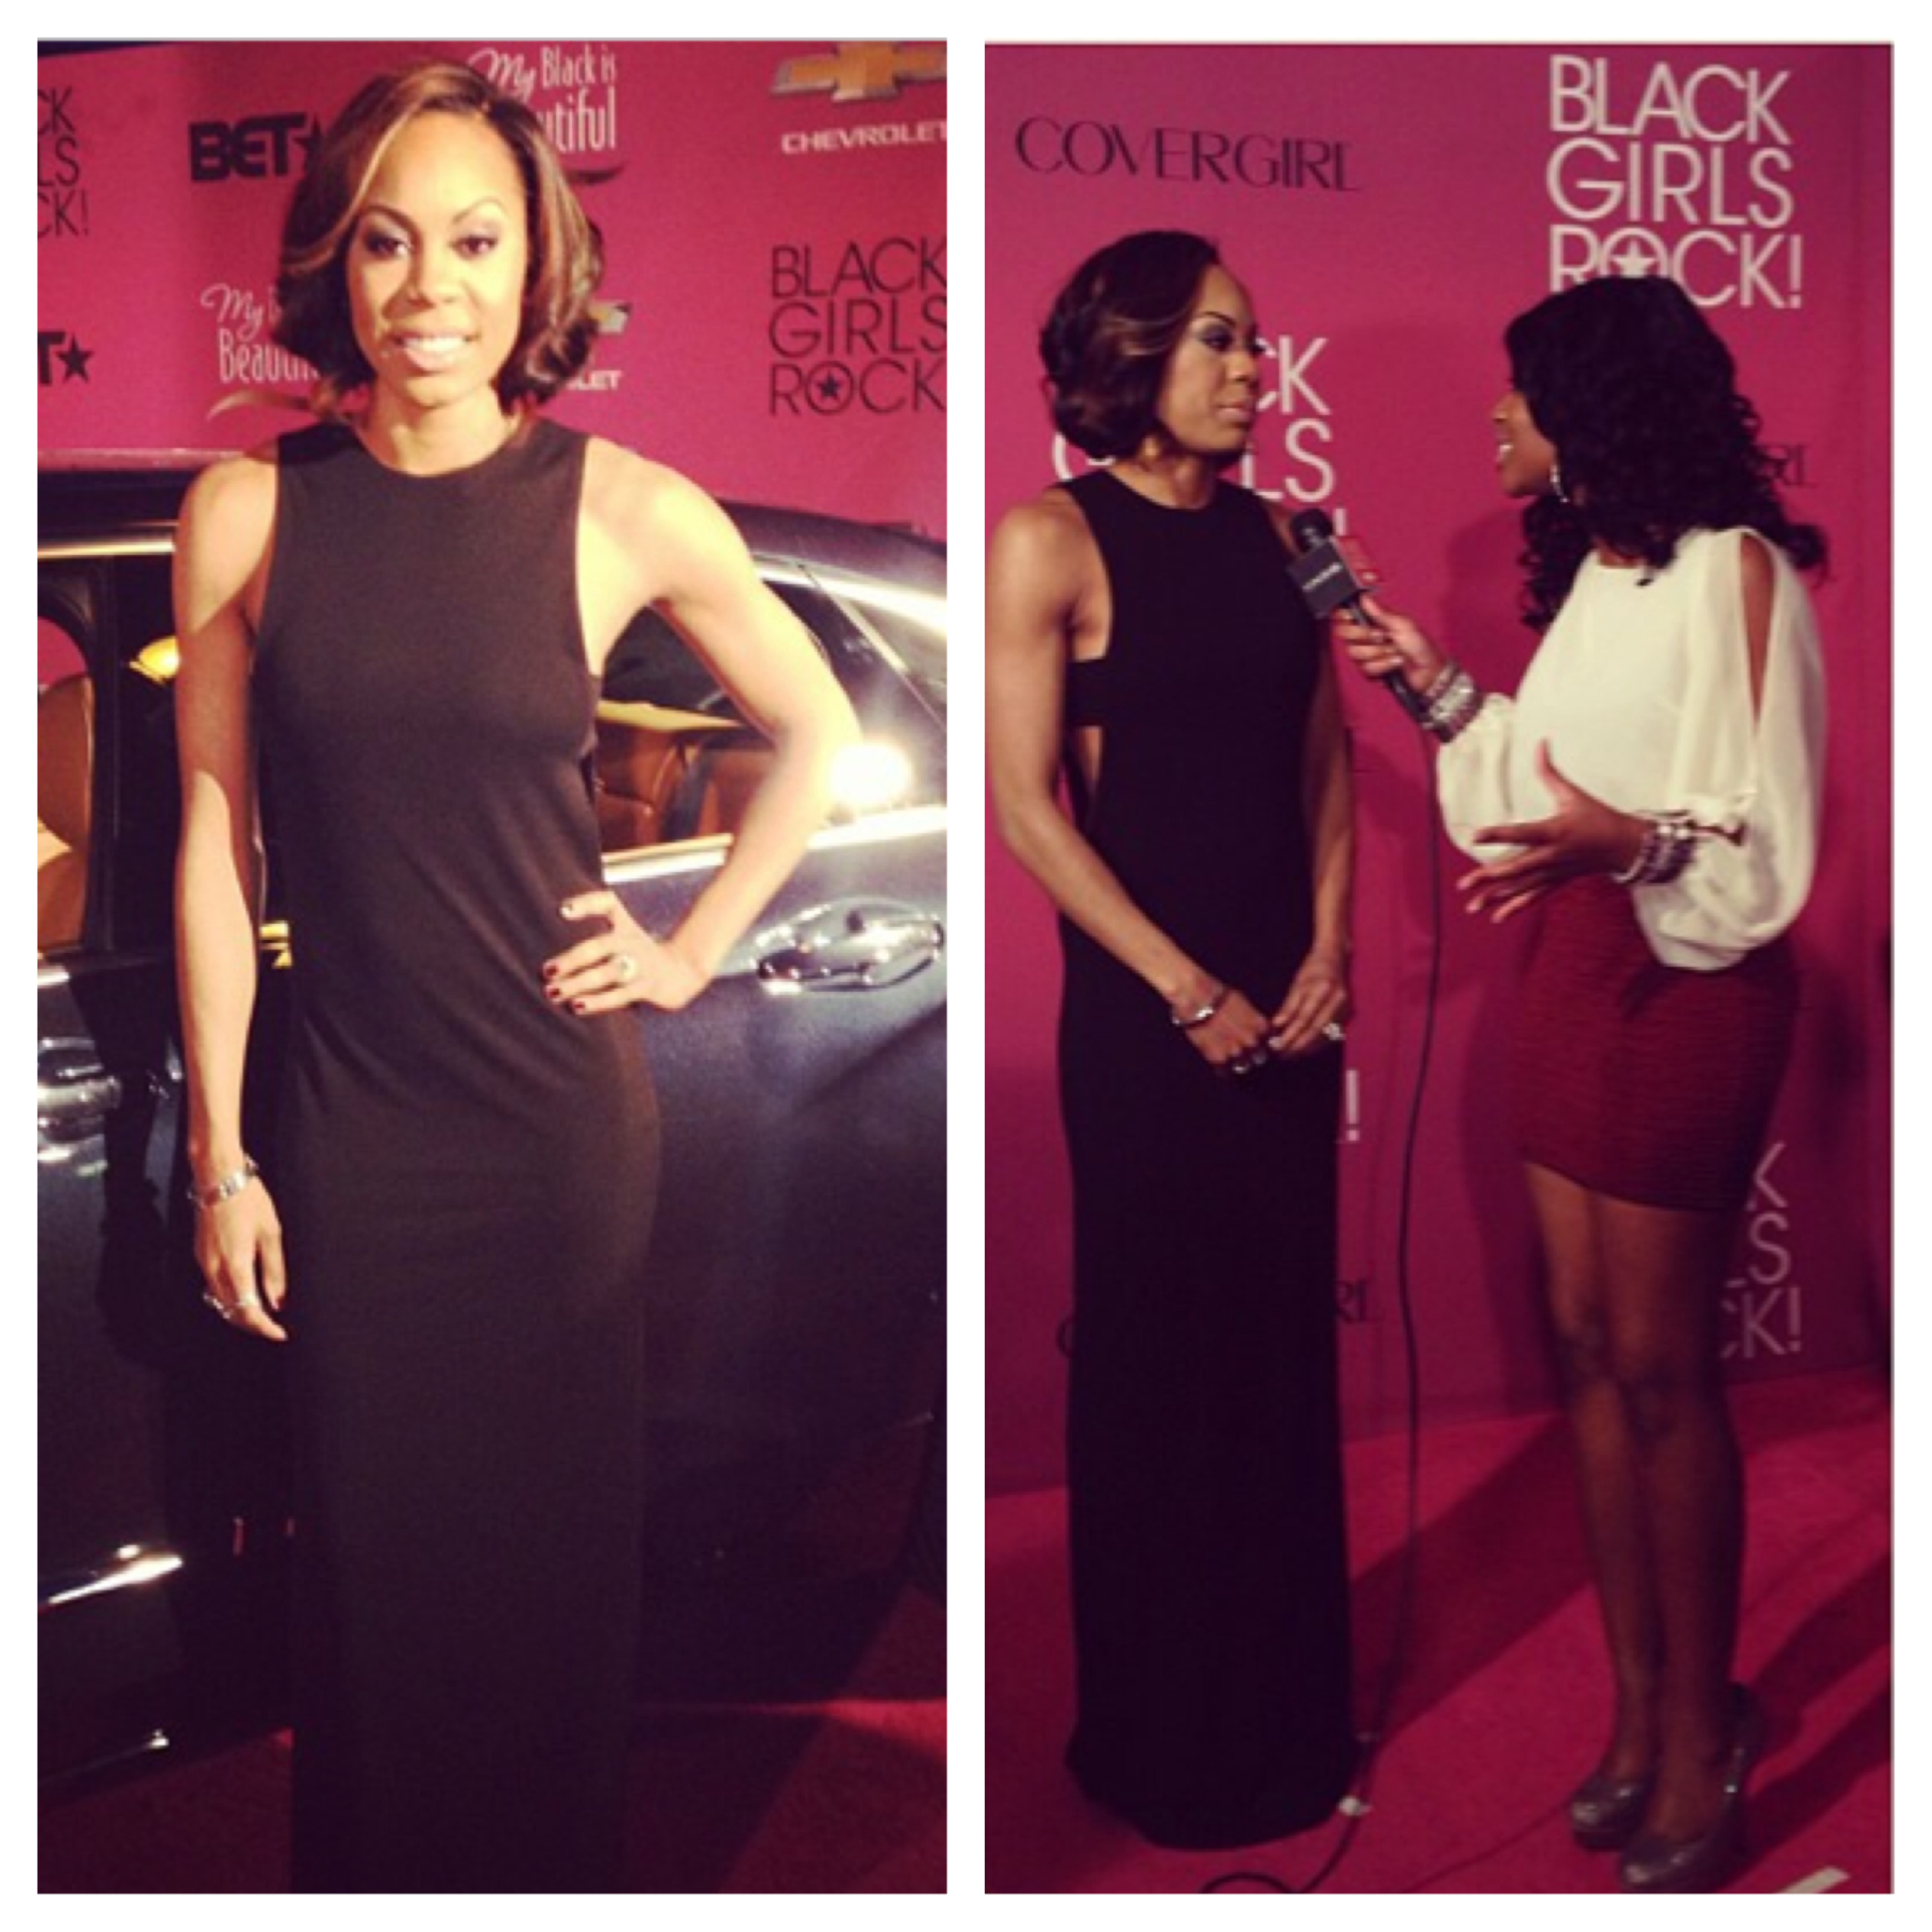 sanya-richards-ross-2013-BET-Black-Girls-Rock-Dress